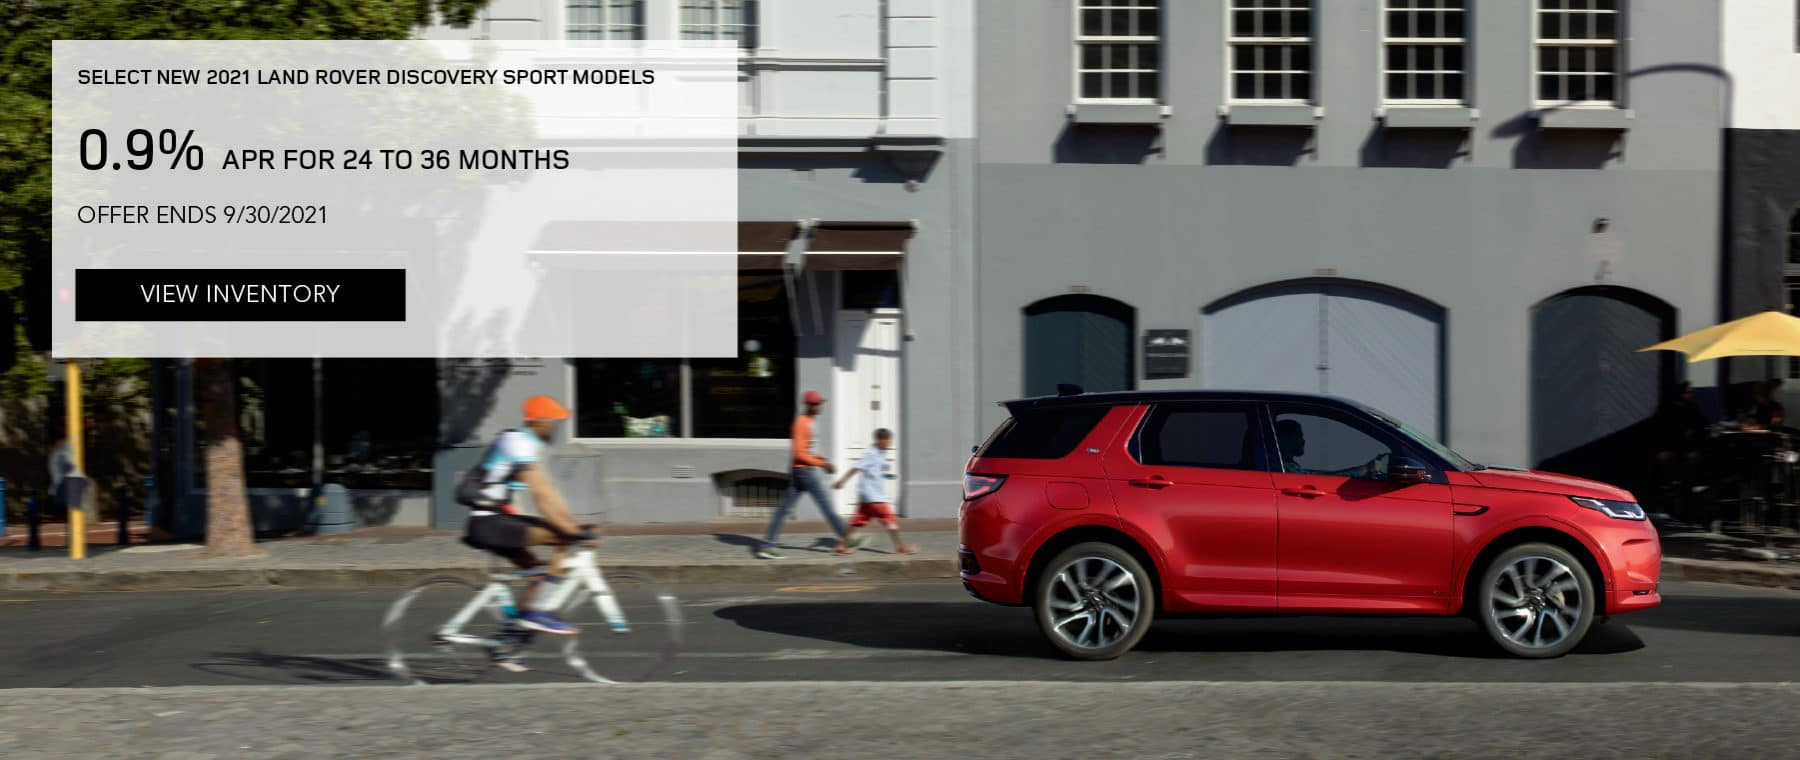 SELECT NEW 2021 LAND ROVER DISCOVERY SPORT MODELS. FINANCE AT 0.9% APR FOR 24 TO 36 MONTHS. EXCLUDES TAXES, TITLE, LICENSE AND FEES. OFFER ENDS 9/30/2021. VIEW INVENTORY. RED LAND ROVER DISCOVERY SPORT DRIVING DOWN ROAD IN CITY.